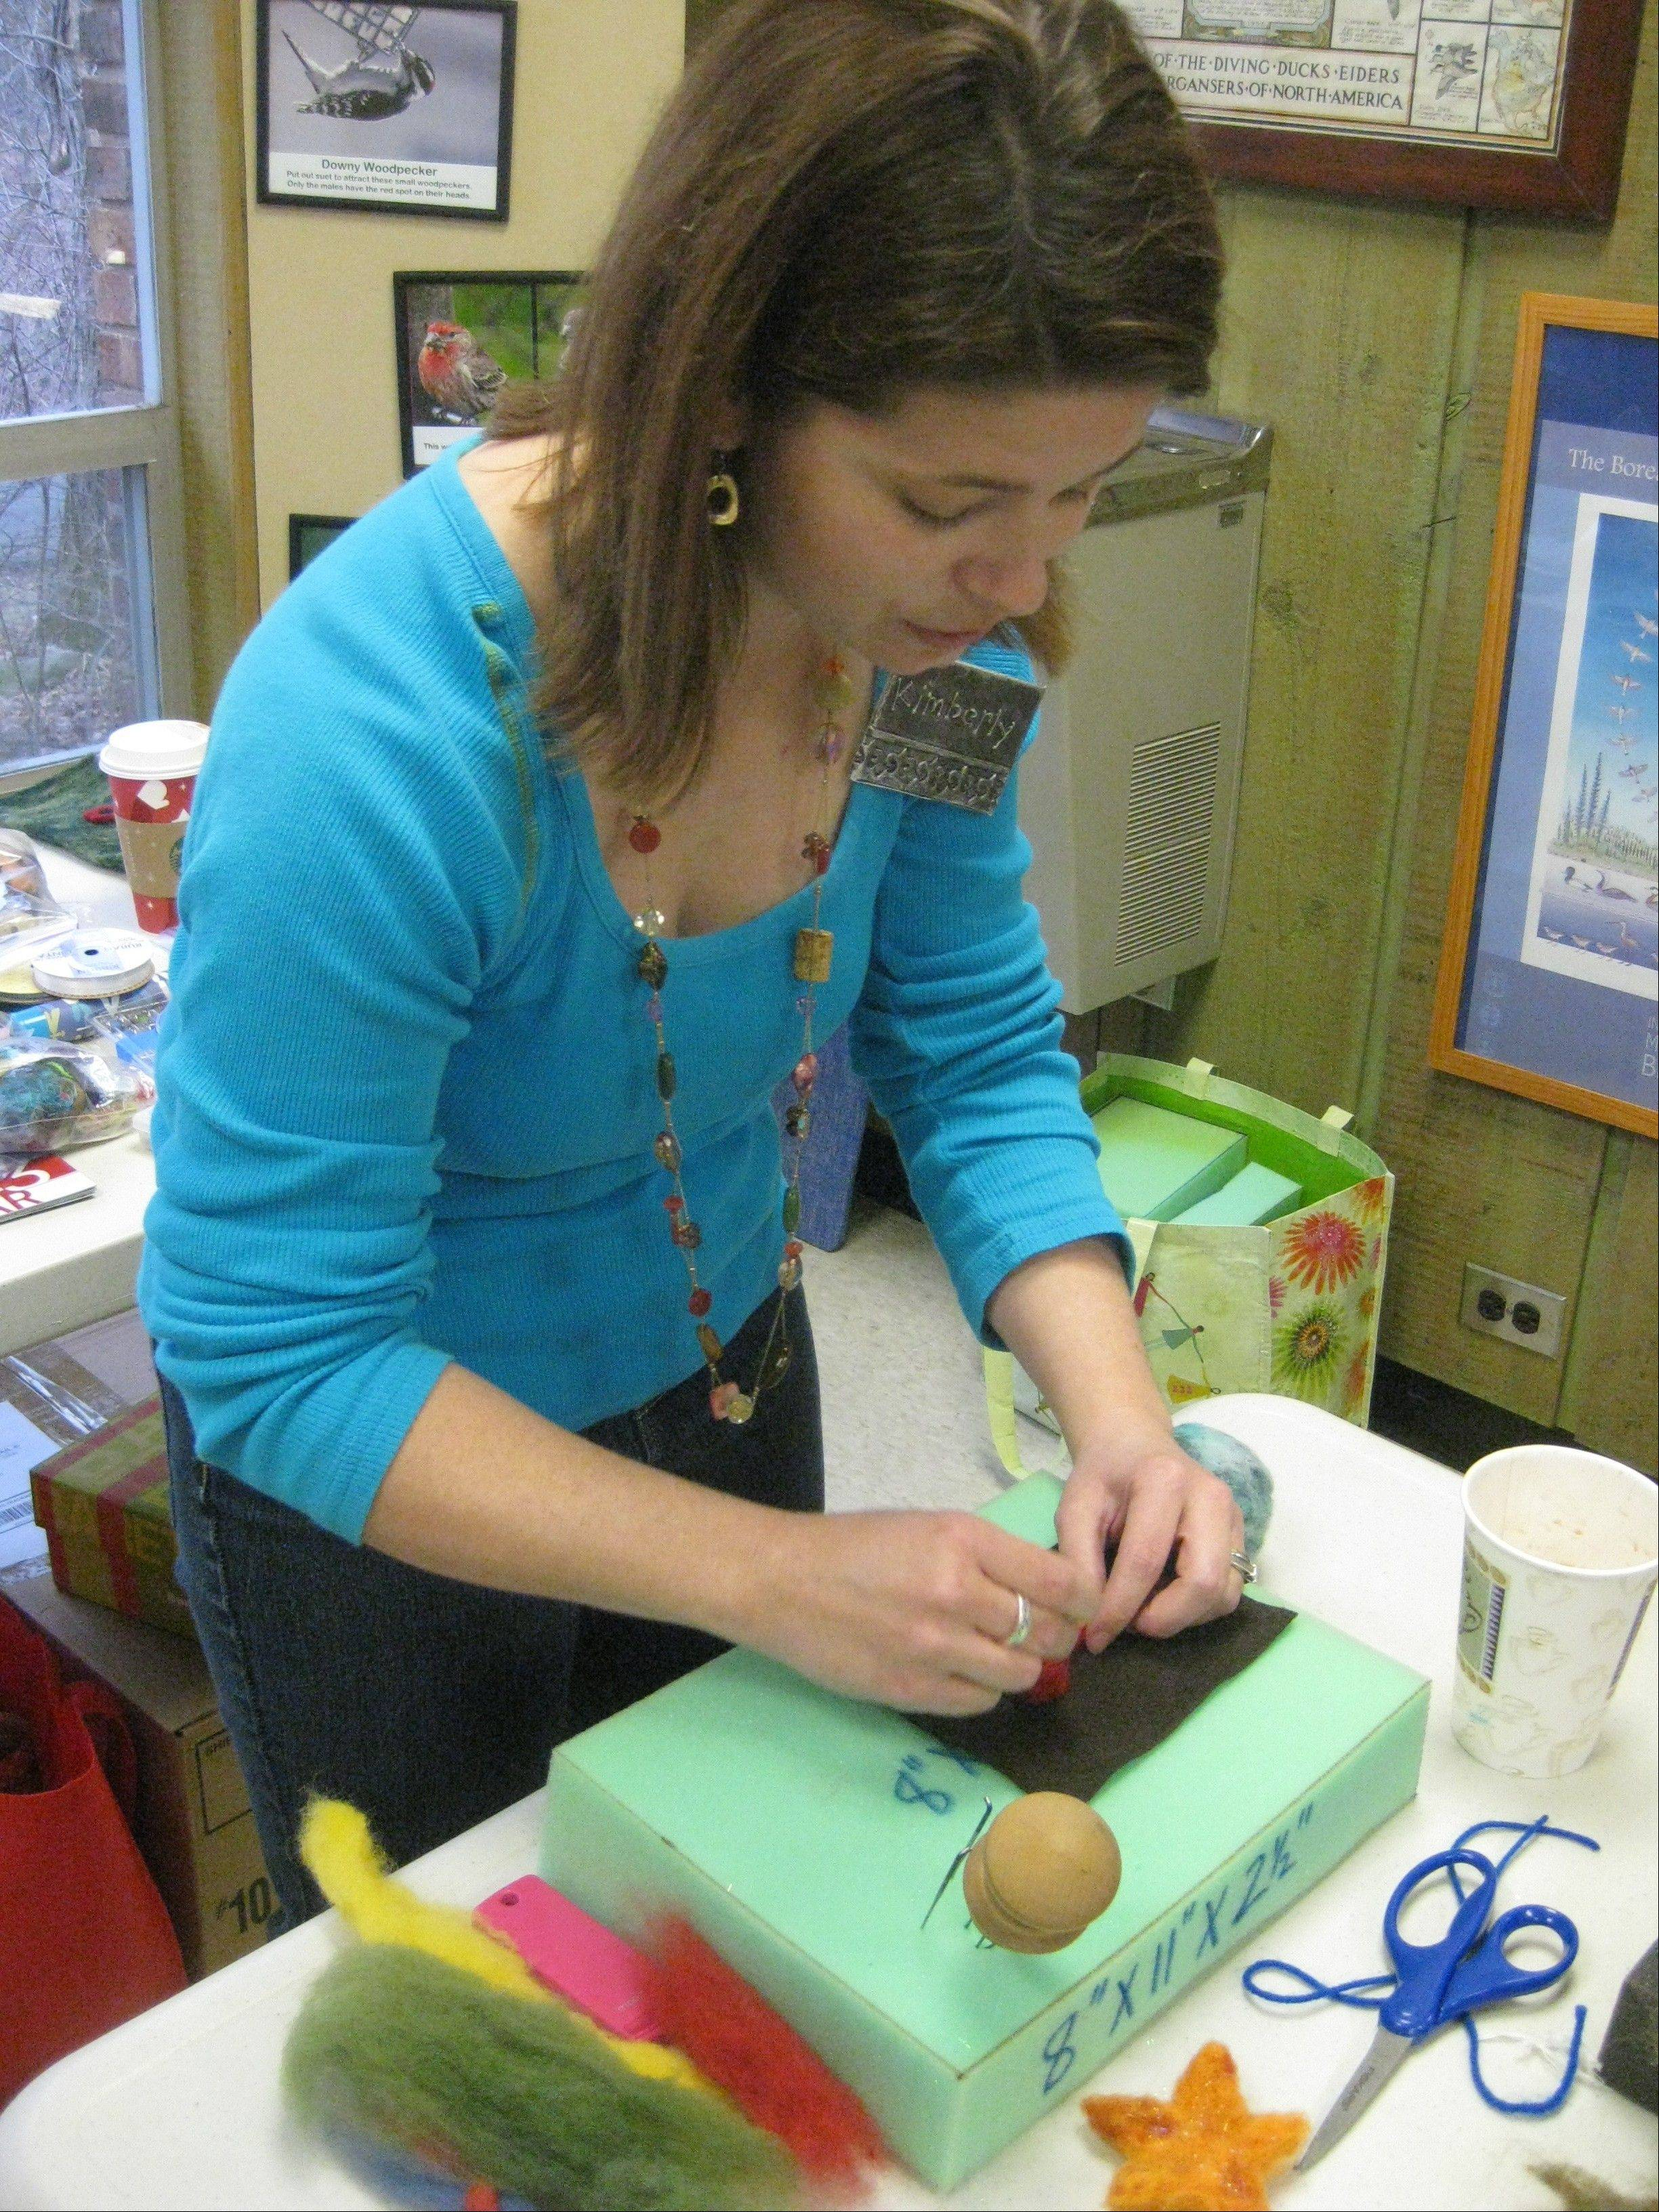 Artist Kimberly Butts demonstrates how to felt wool during a workshop at Crabtree Nature Center in Barrington Hills.